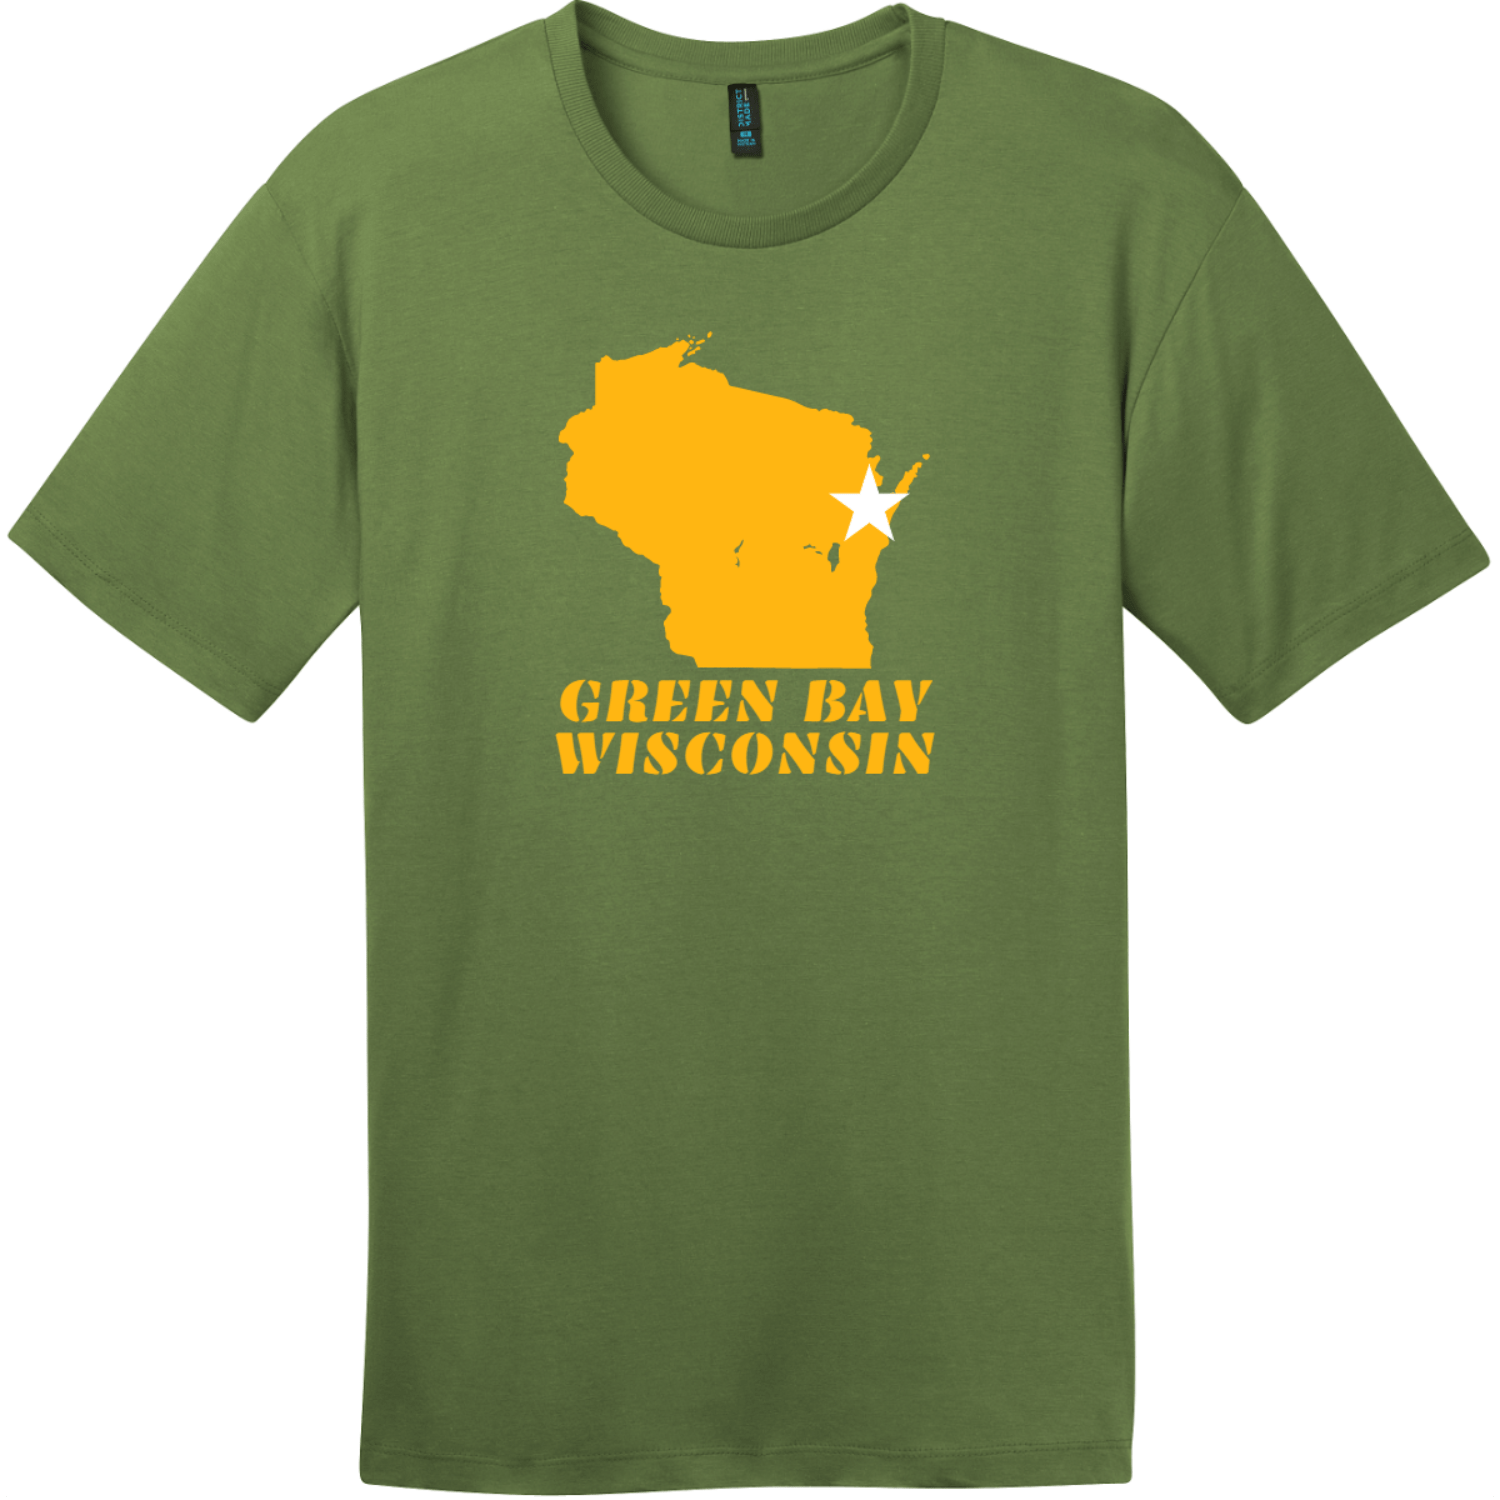 Green Bay Wisconsin State Retro T-Shirt Fresh Fatigue District Perfect Weight Tee DT104